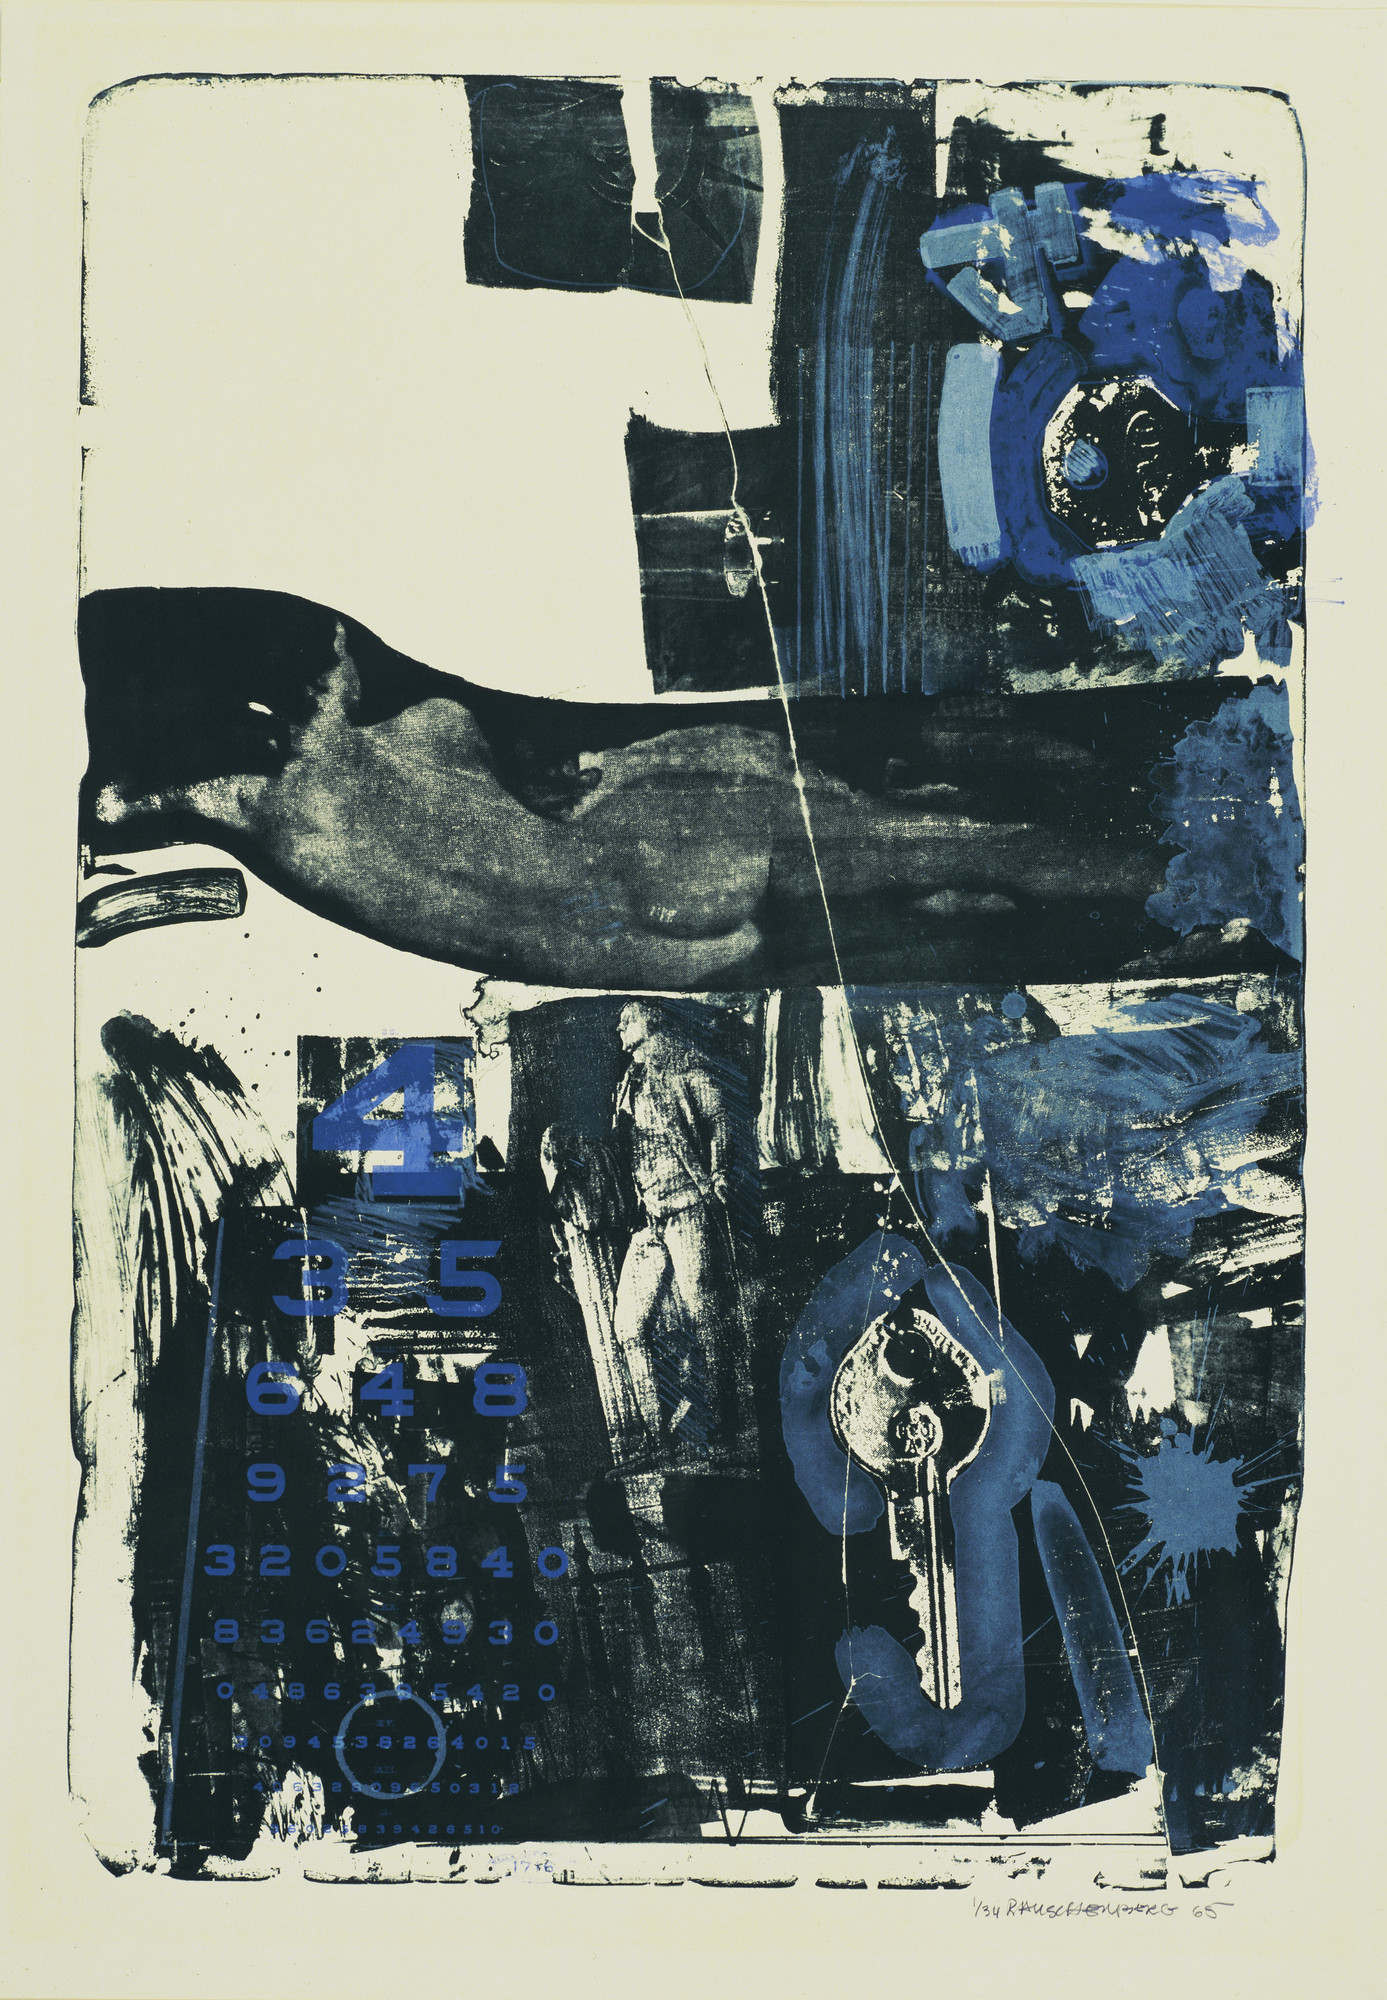 Robert Rauschenberg. Breakthrough II. 1965